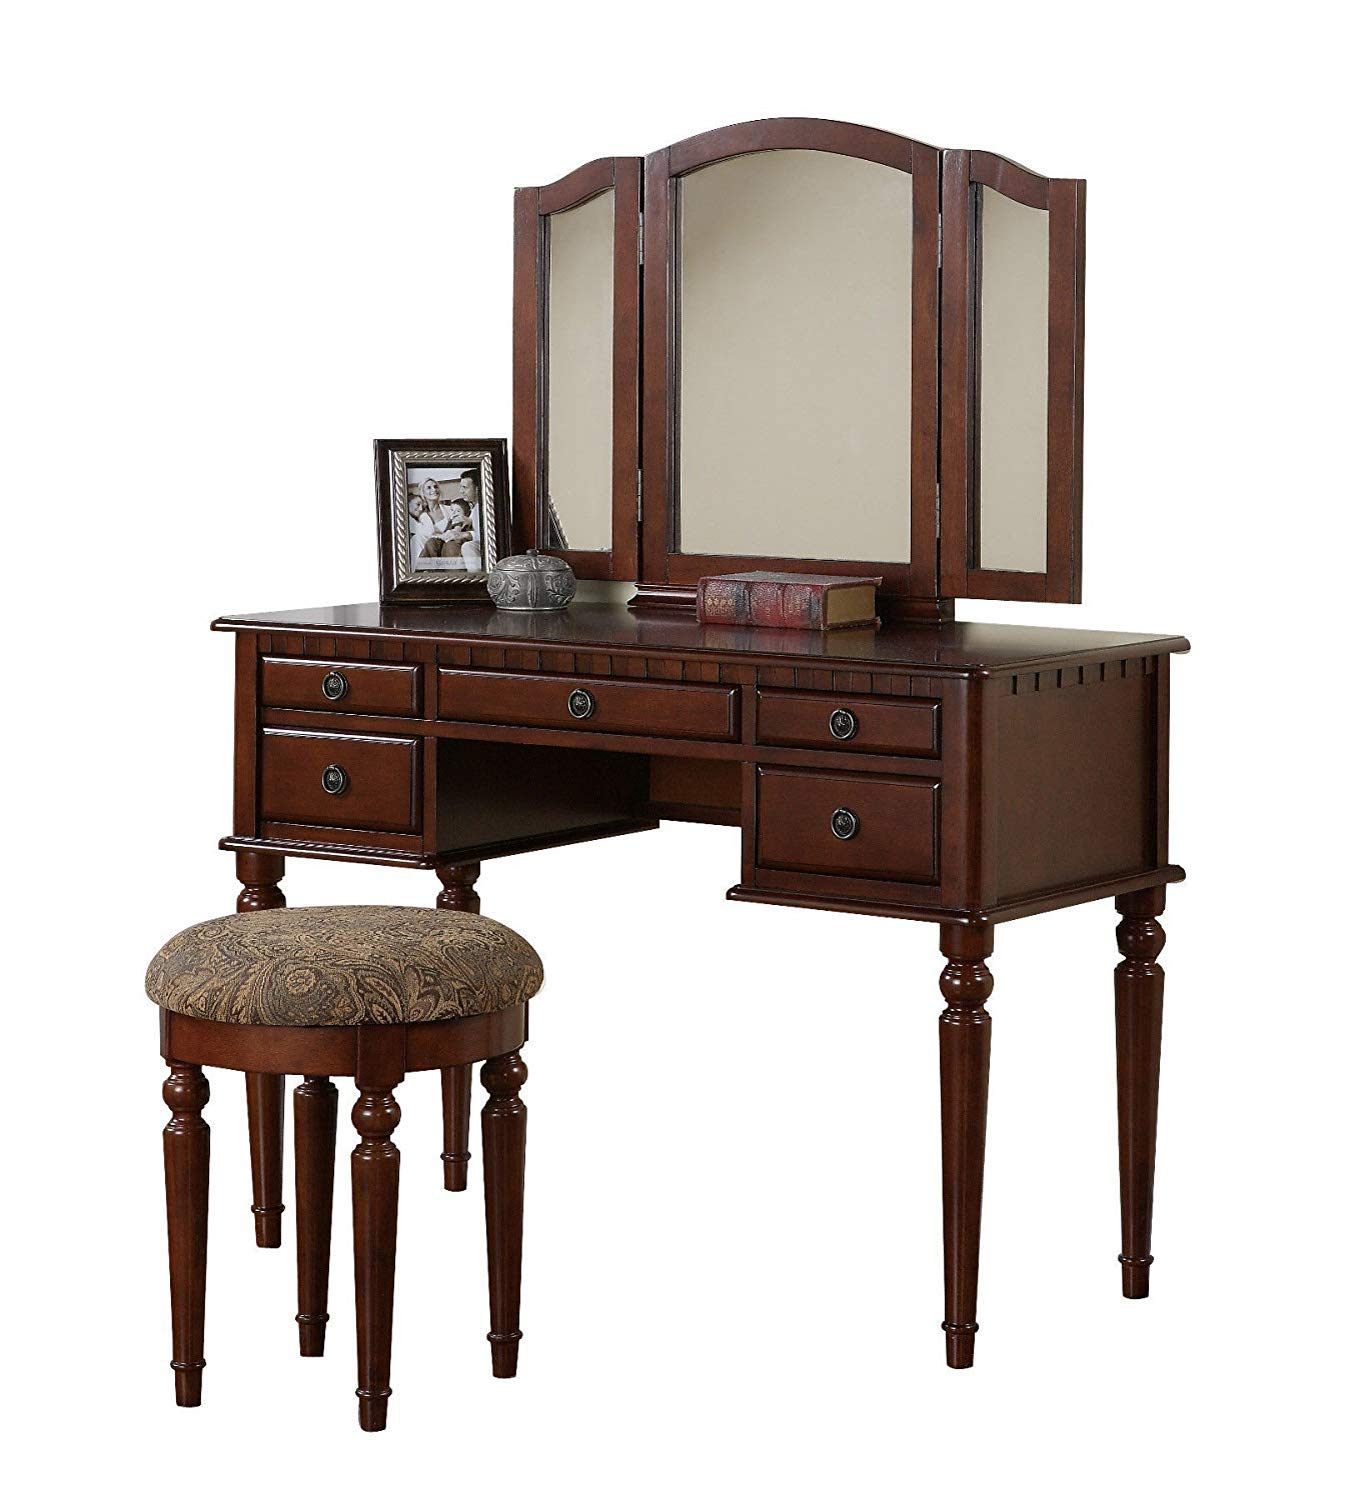 Terrific Vanity Set With Mirror And Stool Vintage Antique Makeup Dresser For Women Table Drawer Organizer Bedroom Furniture Cherry Download Free Architecture Designs Scobabritishbridgeorg